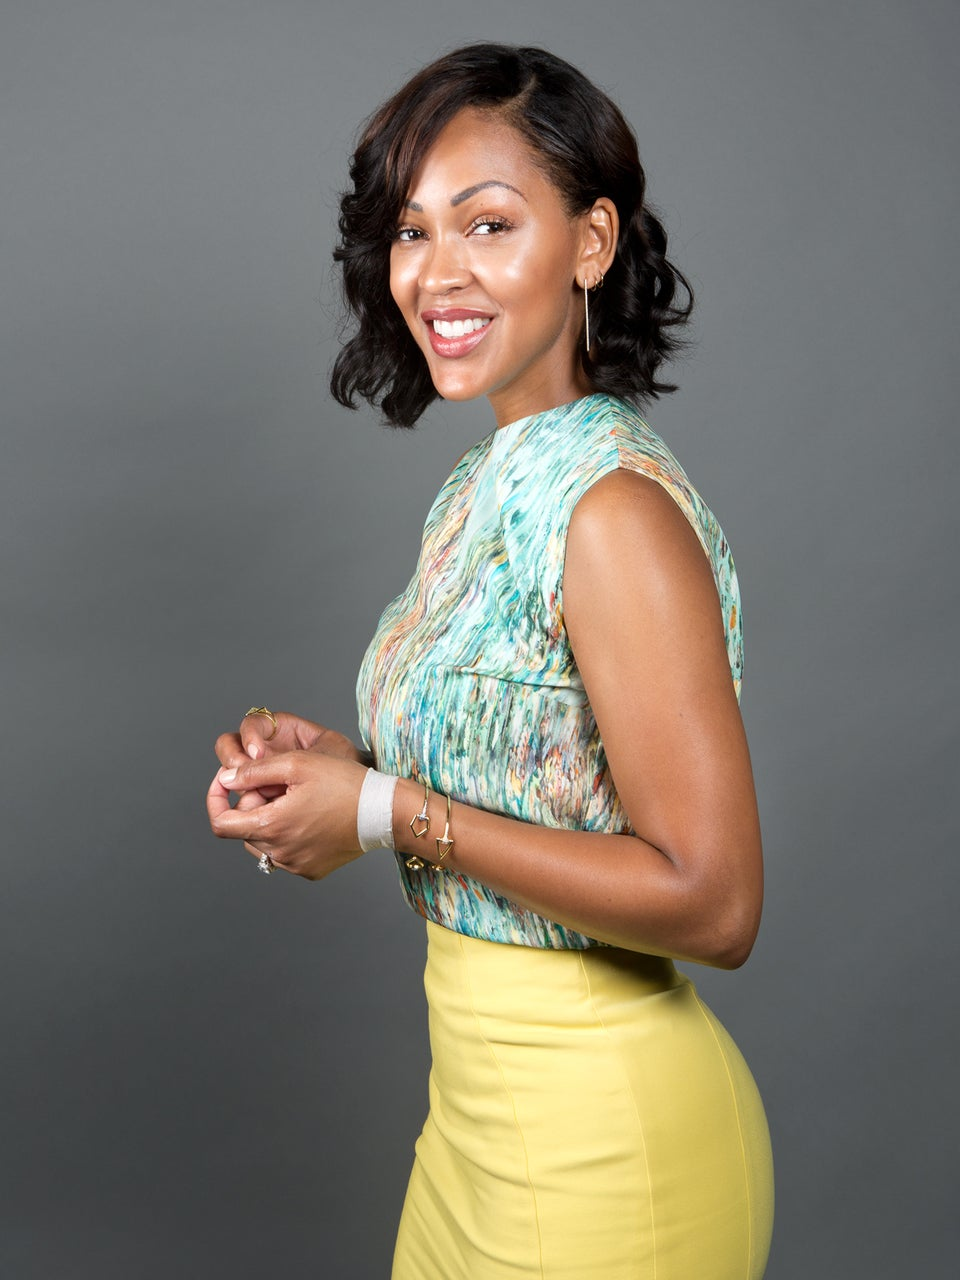 Meagan Good Explains Why This Election Isn't Just About Choosing A President